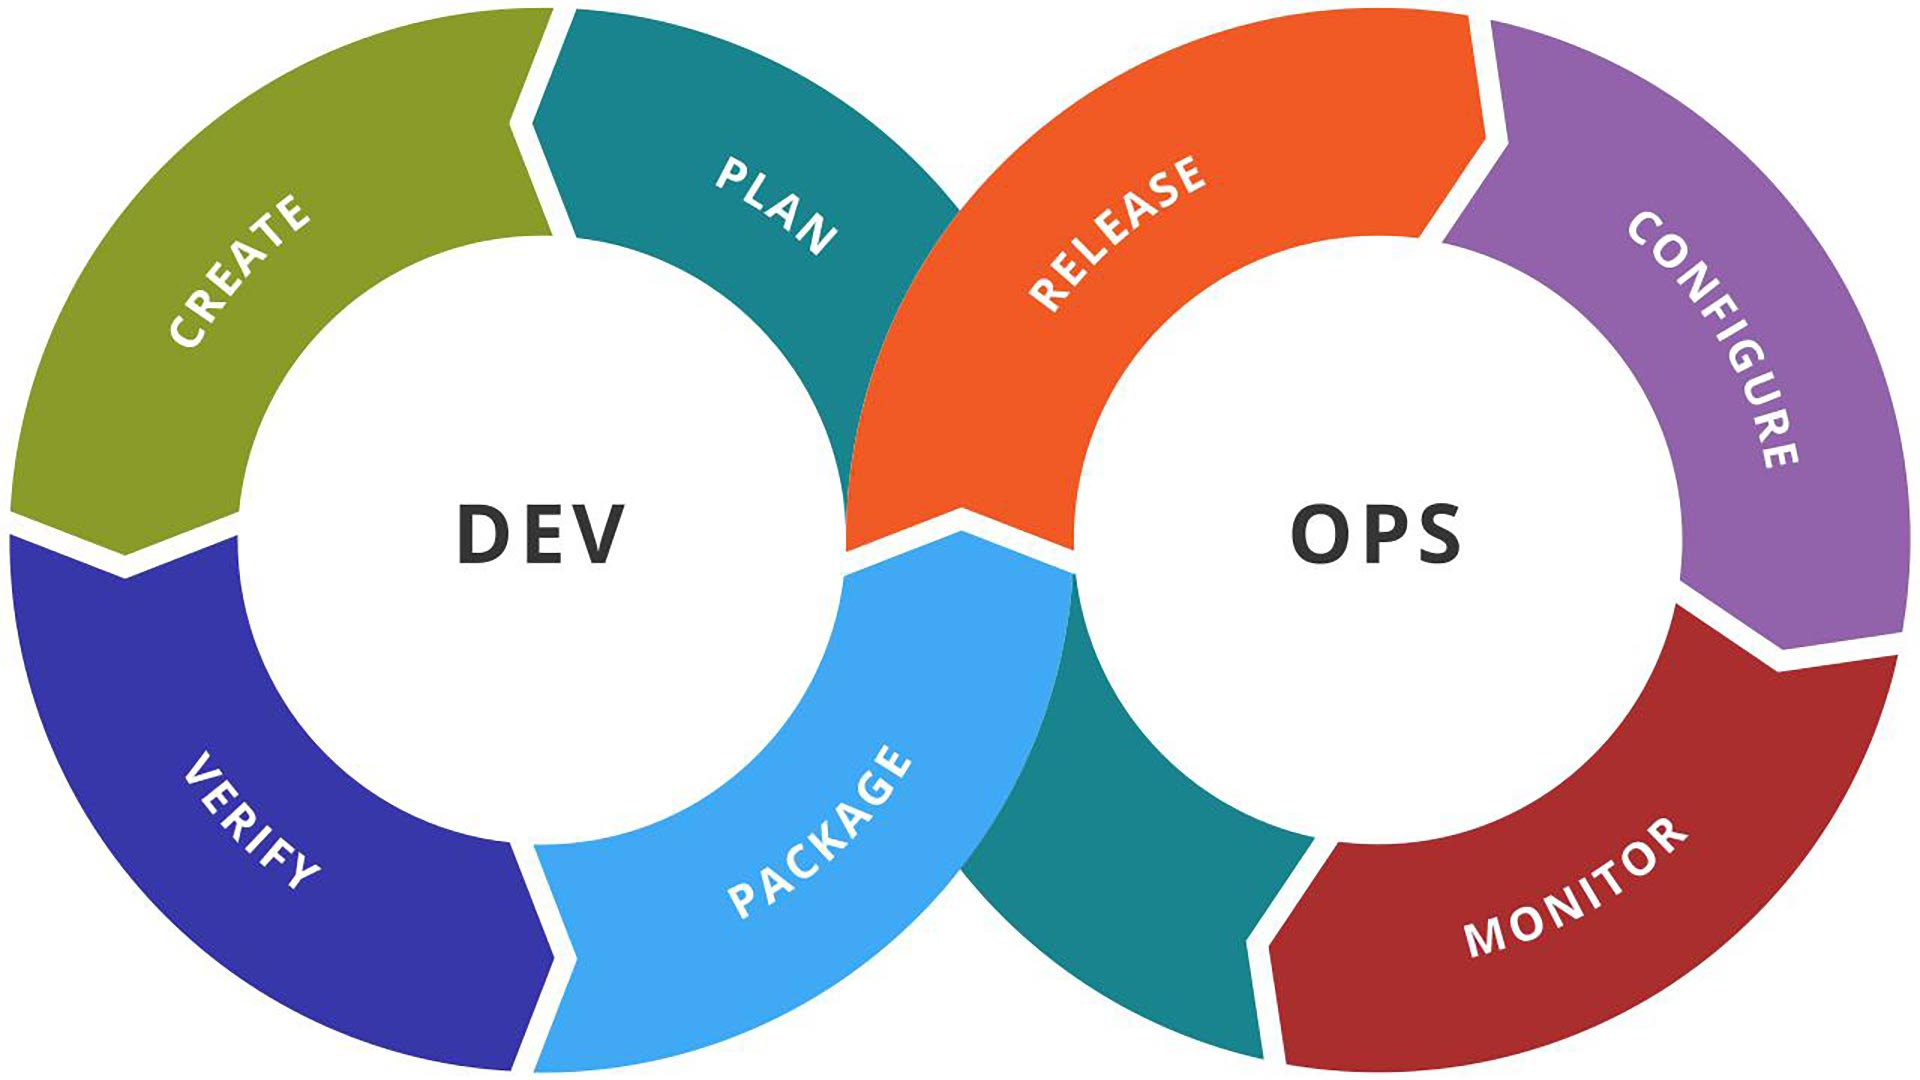 Extra Red - DevOps methodology